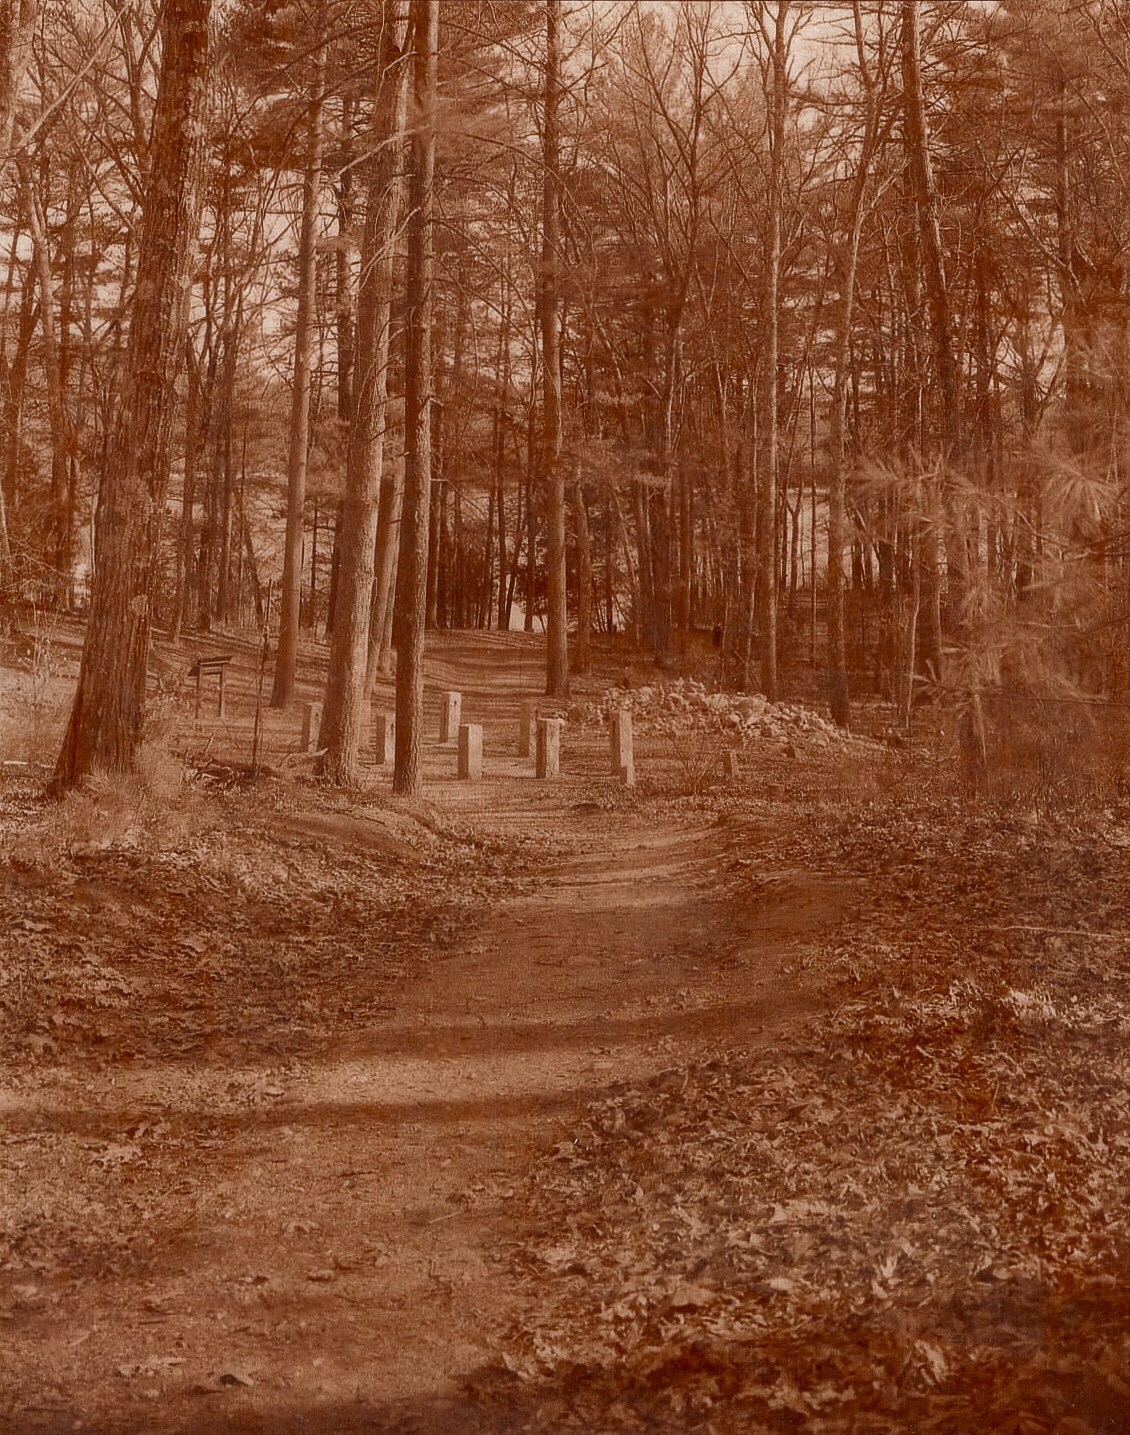 Thoreau's original cabin site